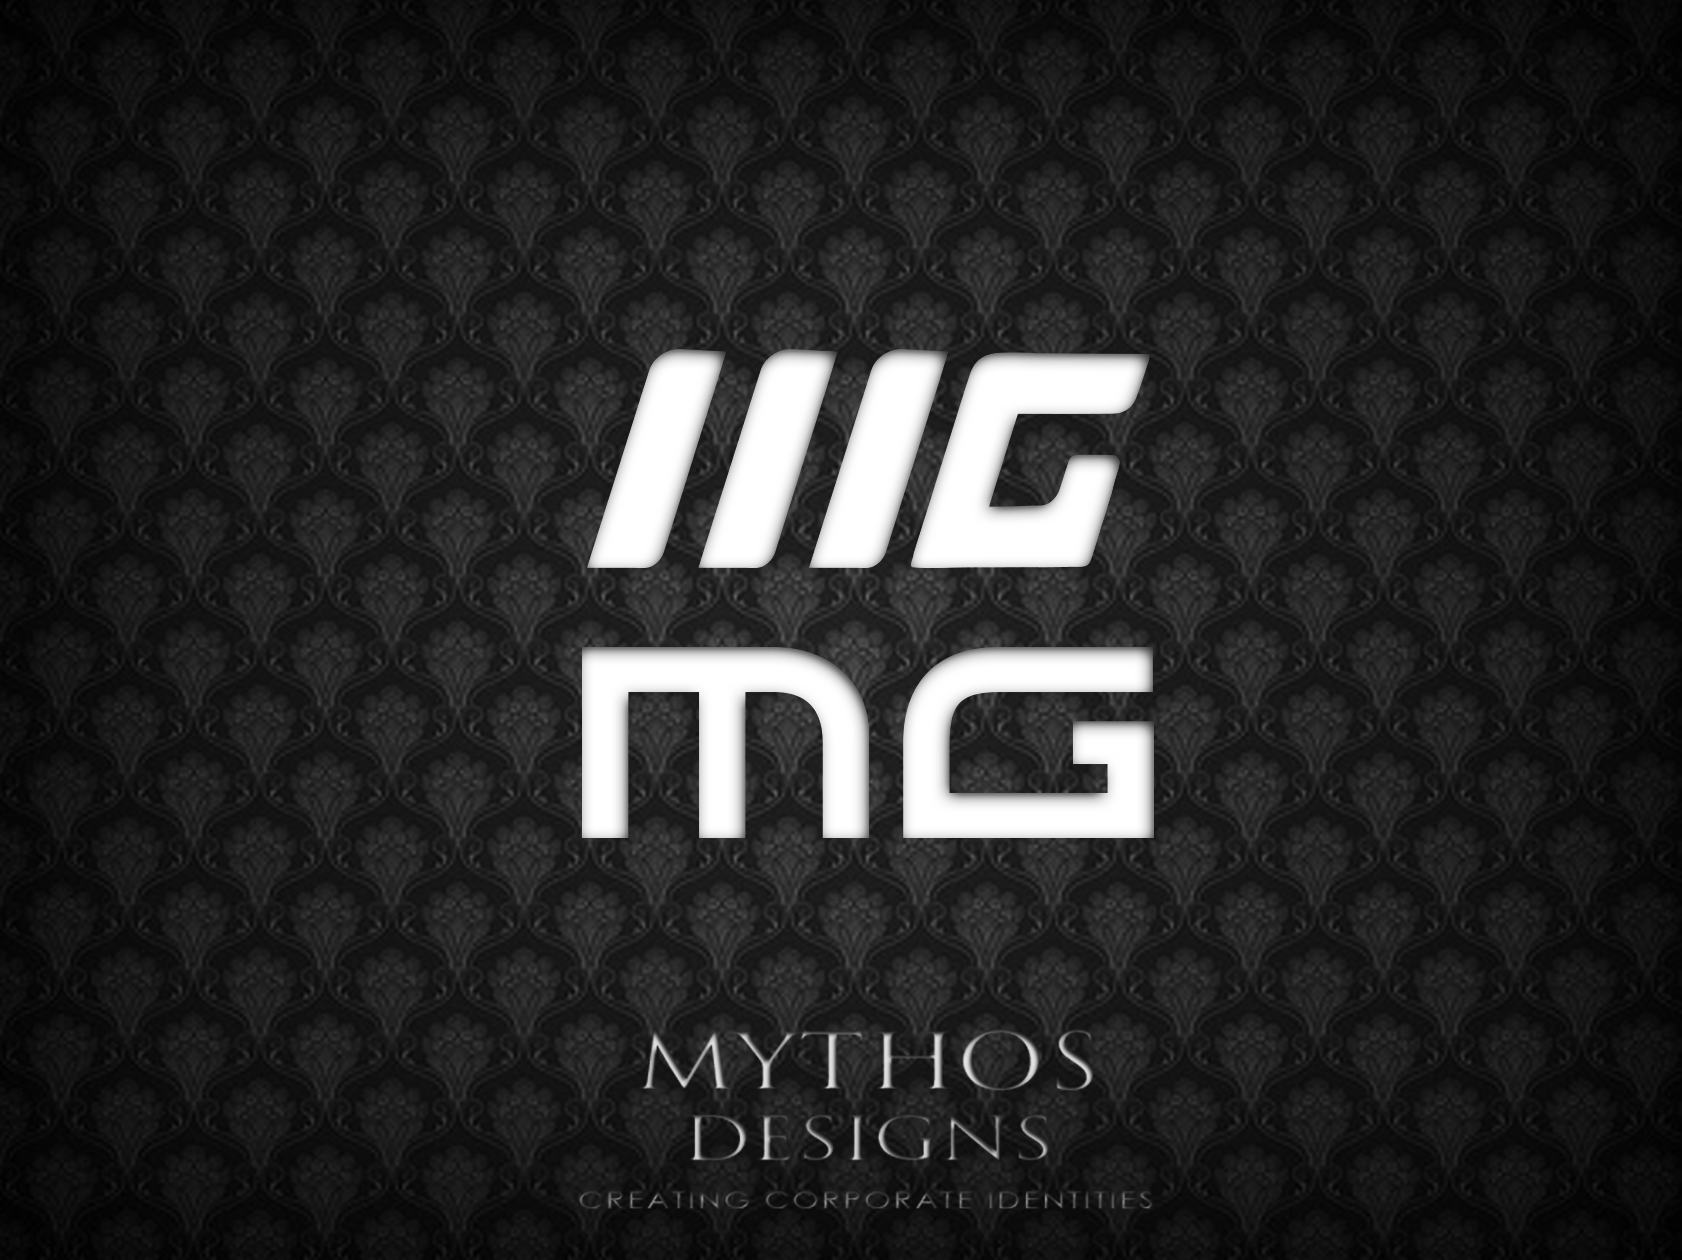 Custom Design by Mythos Designs - Entry No. 48 in the Custom Design Contest Imaginative Custom Design for MG.